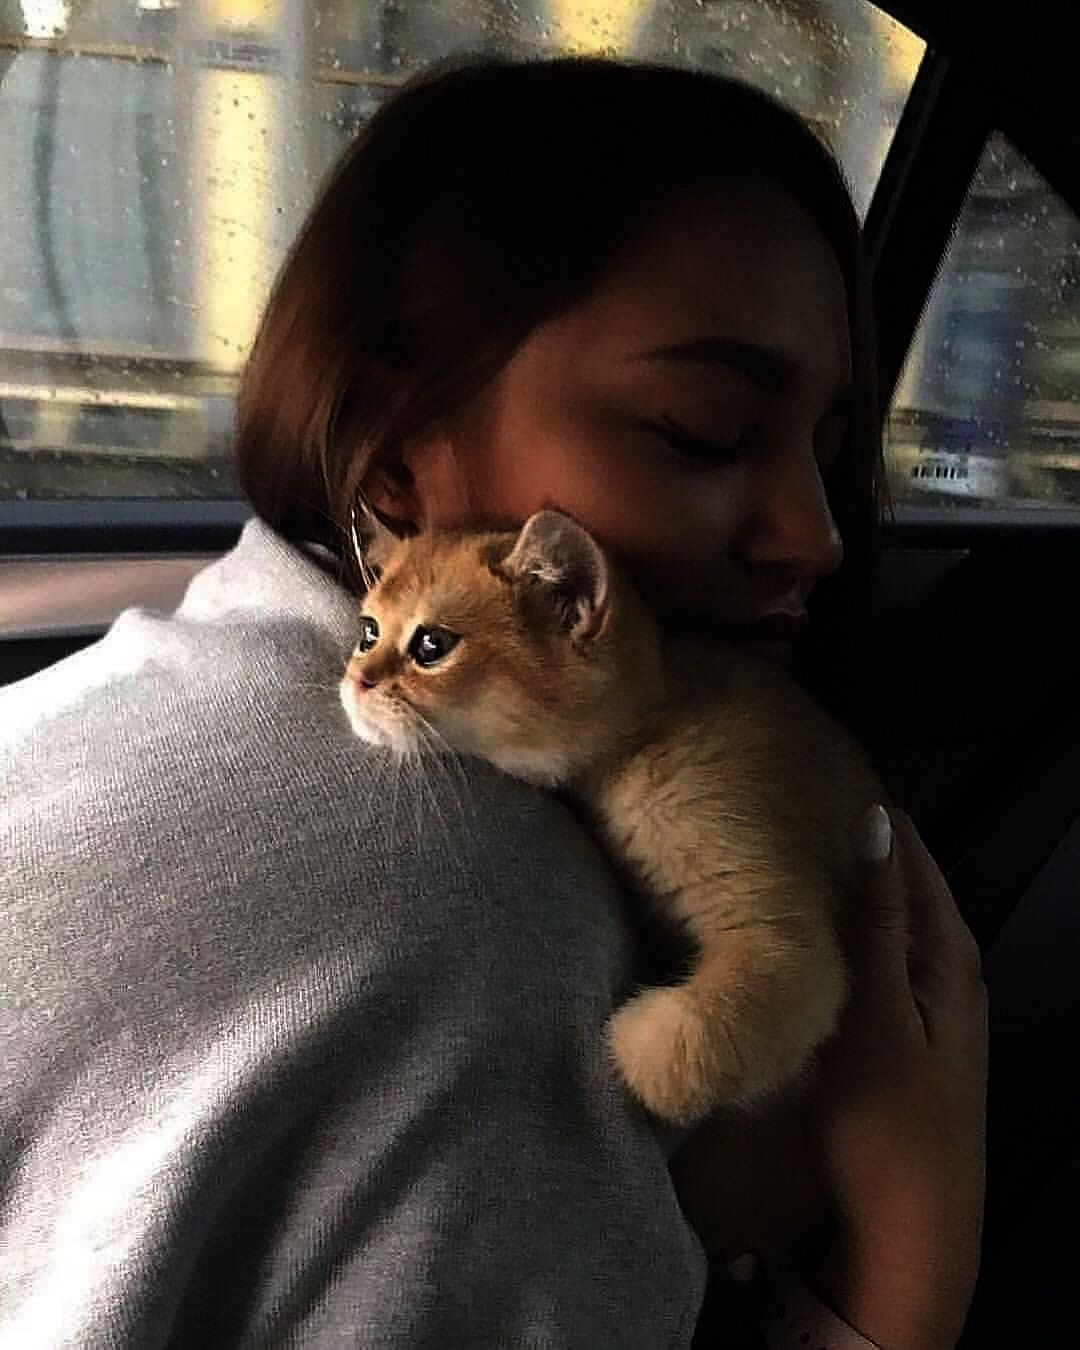 Cute Cat Good Morning Pictures Not Cute Animals Status Video Download Round Cute Cat Crying Gif Before Cute Animals Playing Videos Cat Lovers Animals Cat Day